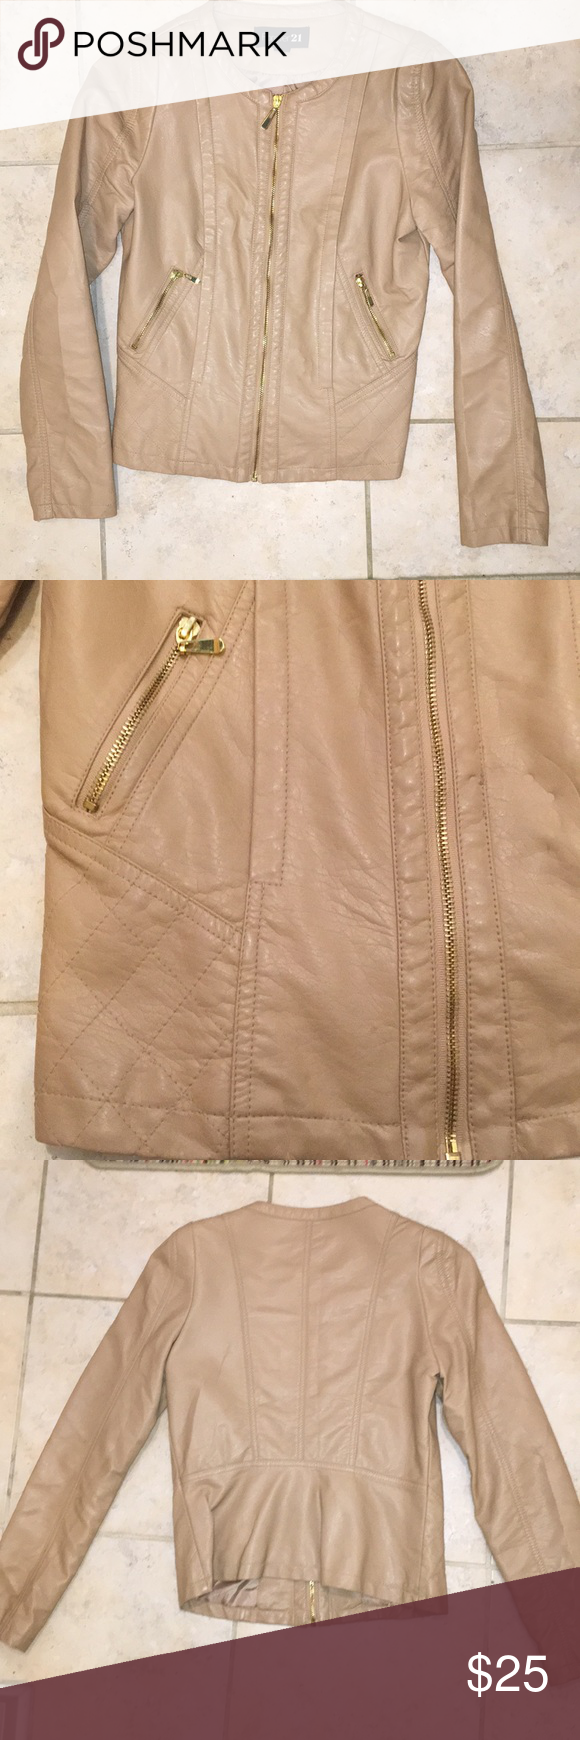 Light Tan Faux Leather Jacket with Gold Accents Slim fit